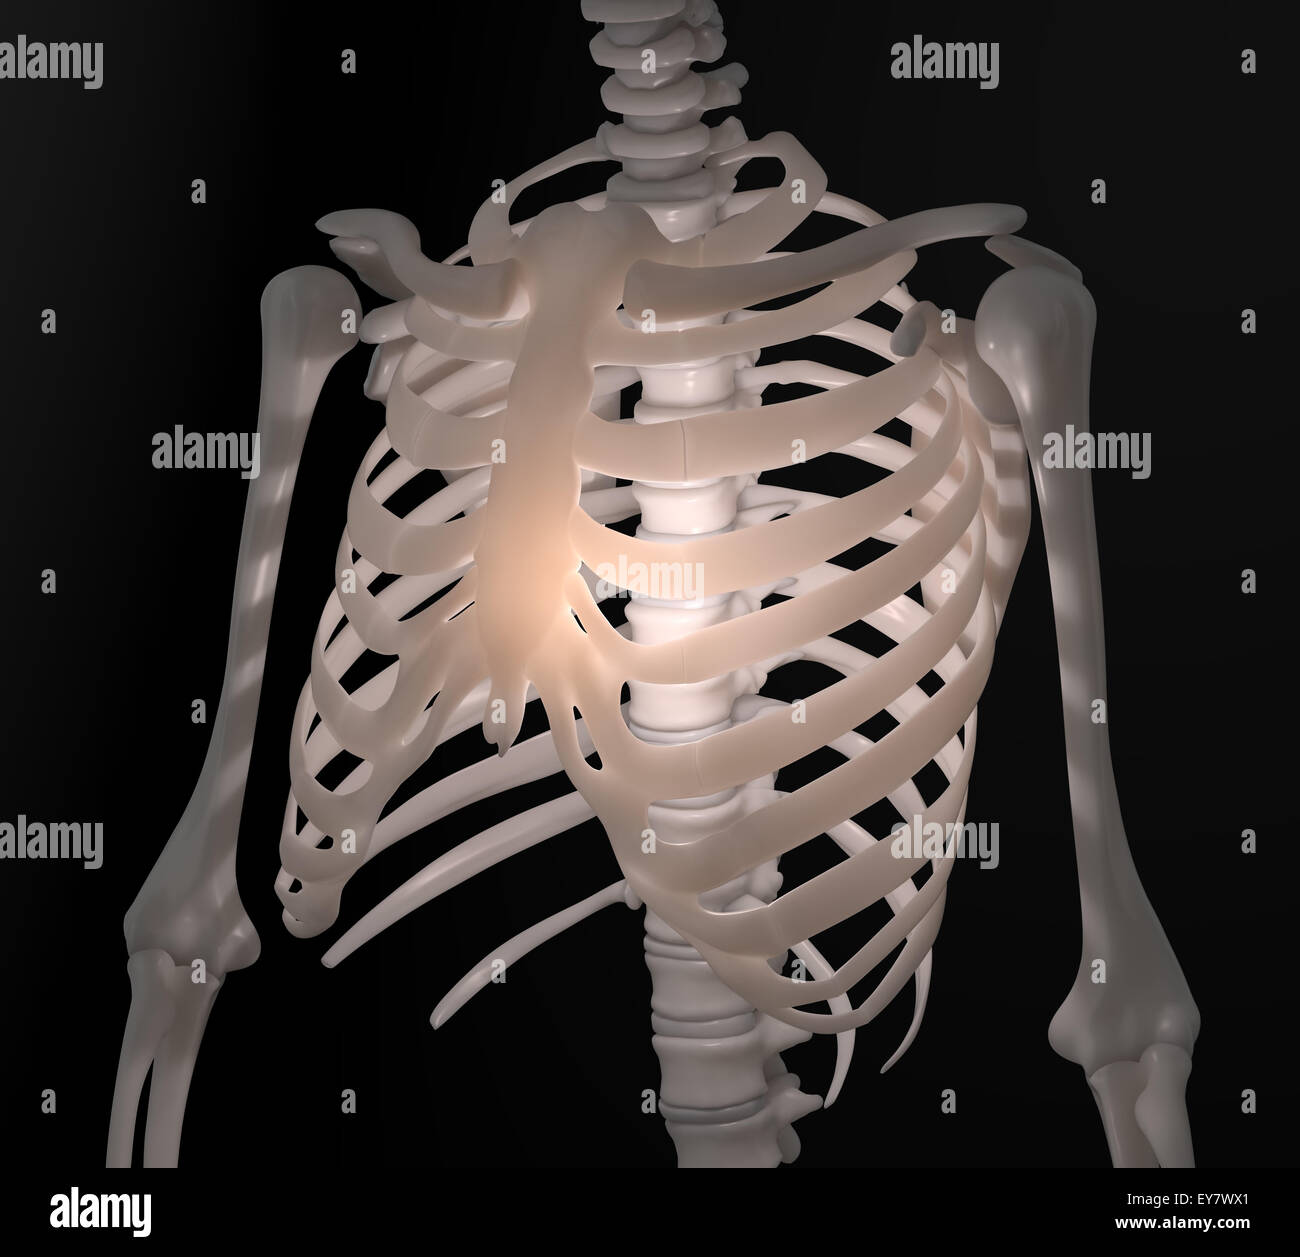 human skeleton - chest anatomy illustration stock photo, royalty, Skeleton